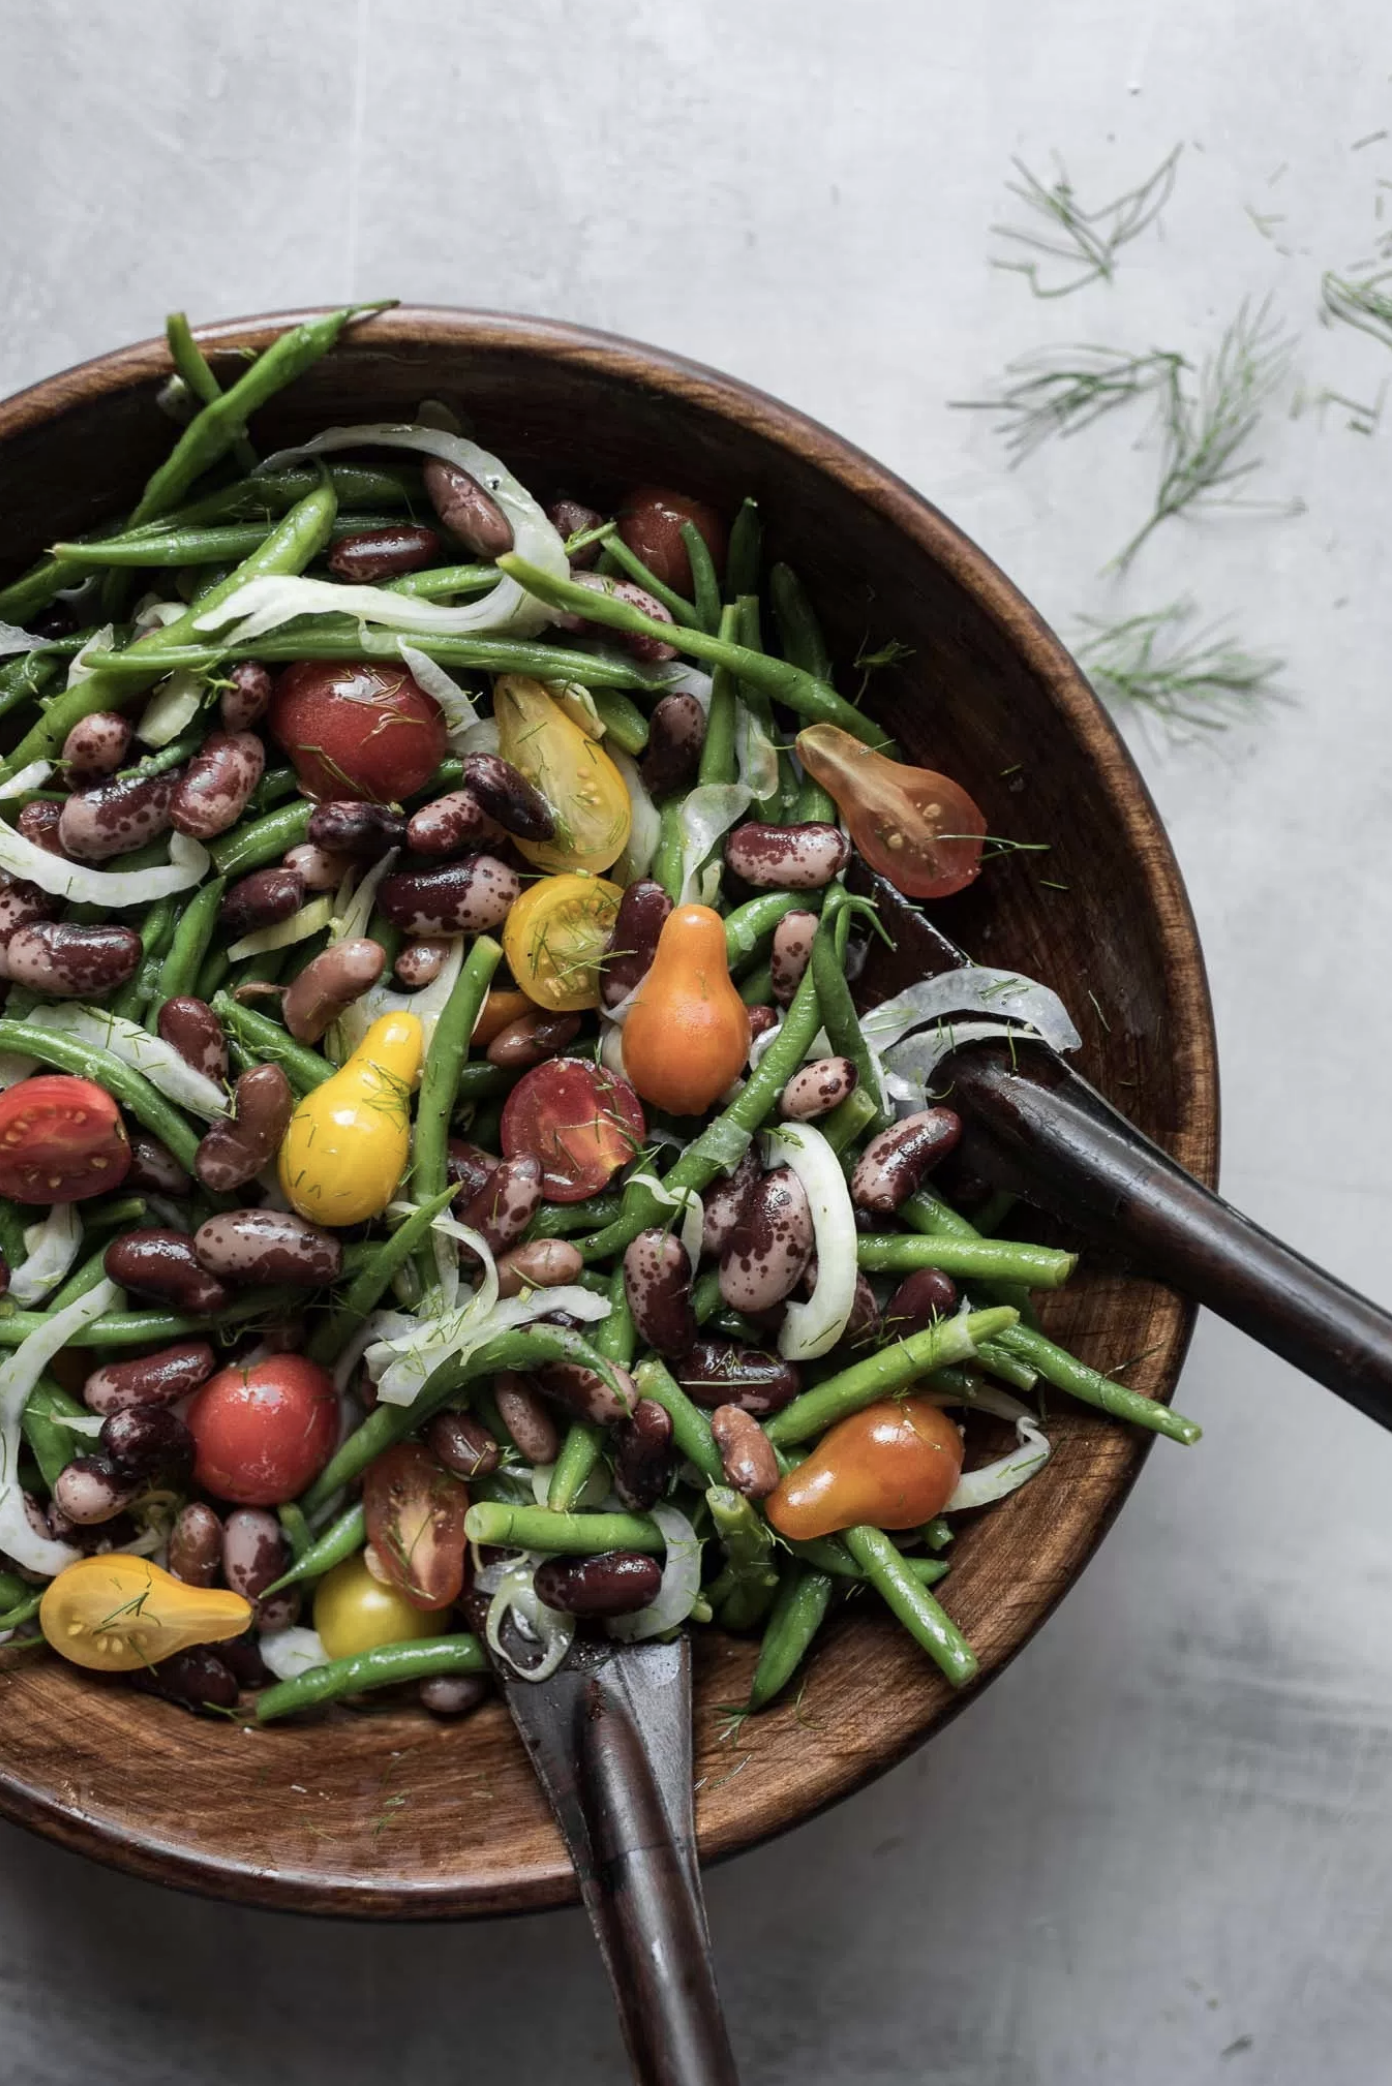 Heirloom Cattle Bean Salad by Bella of @ful.filled